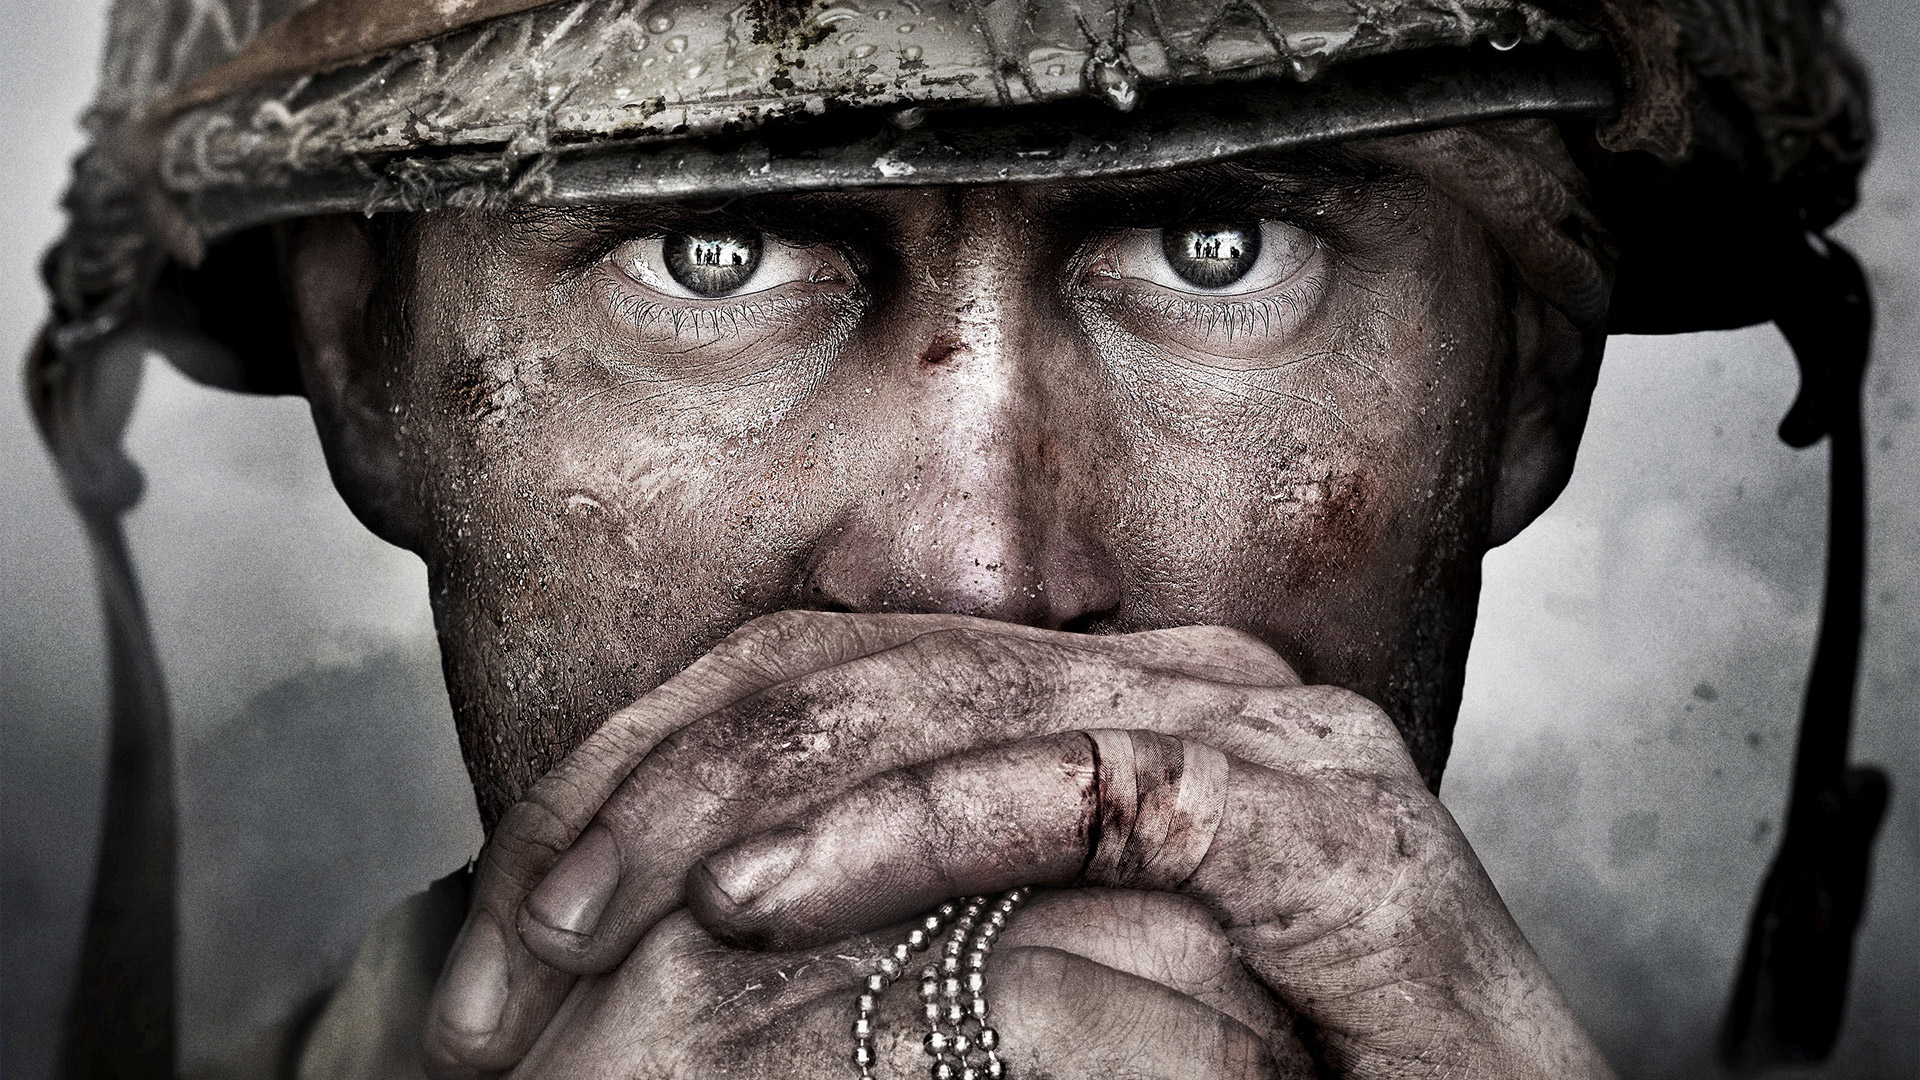 Free Call of Duty: WWII Wallpaper in 1920x1080